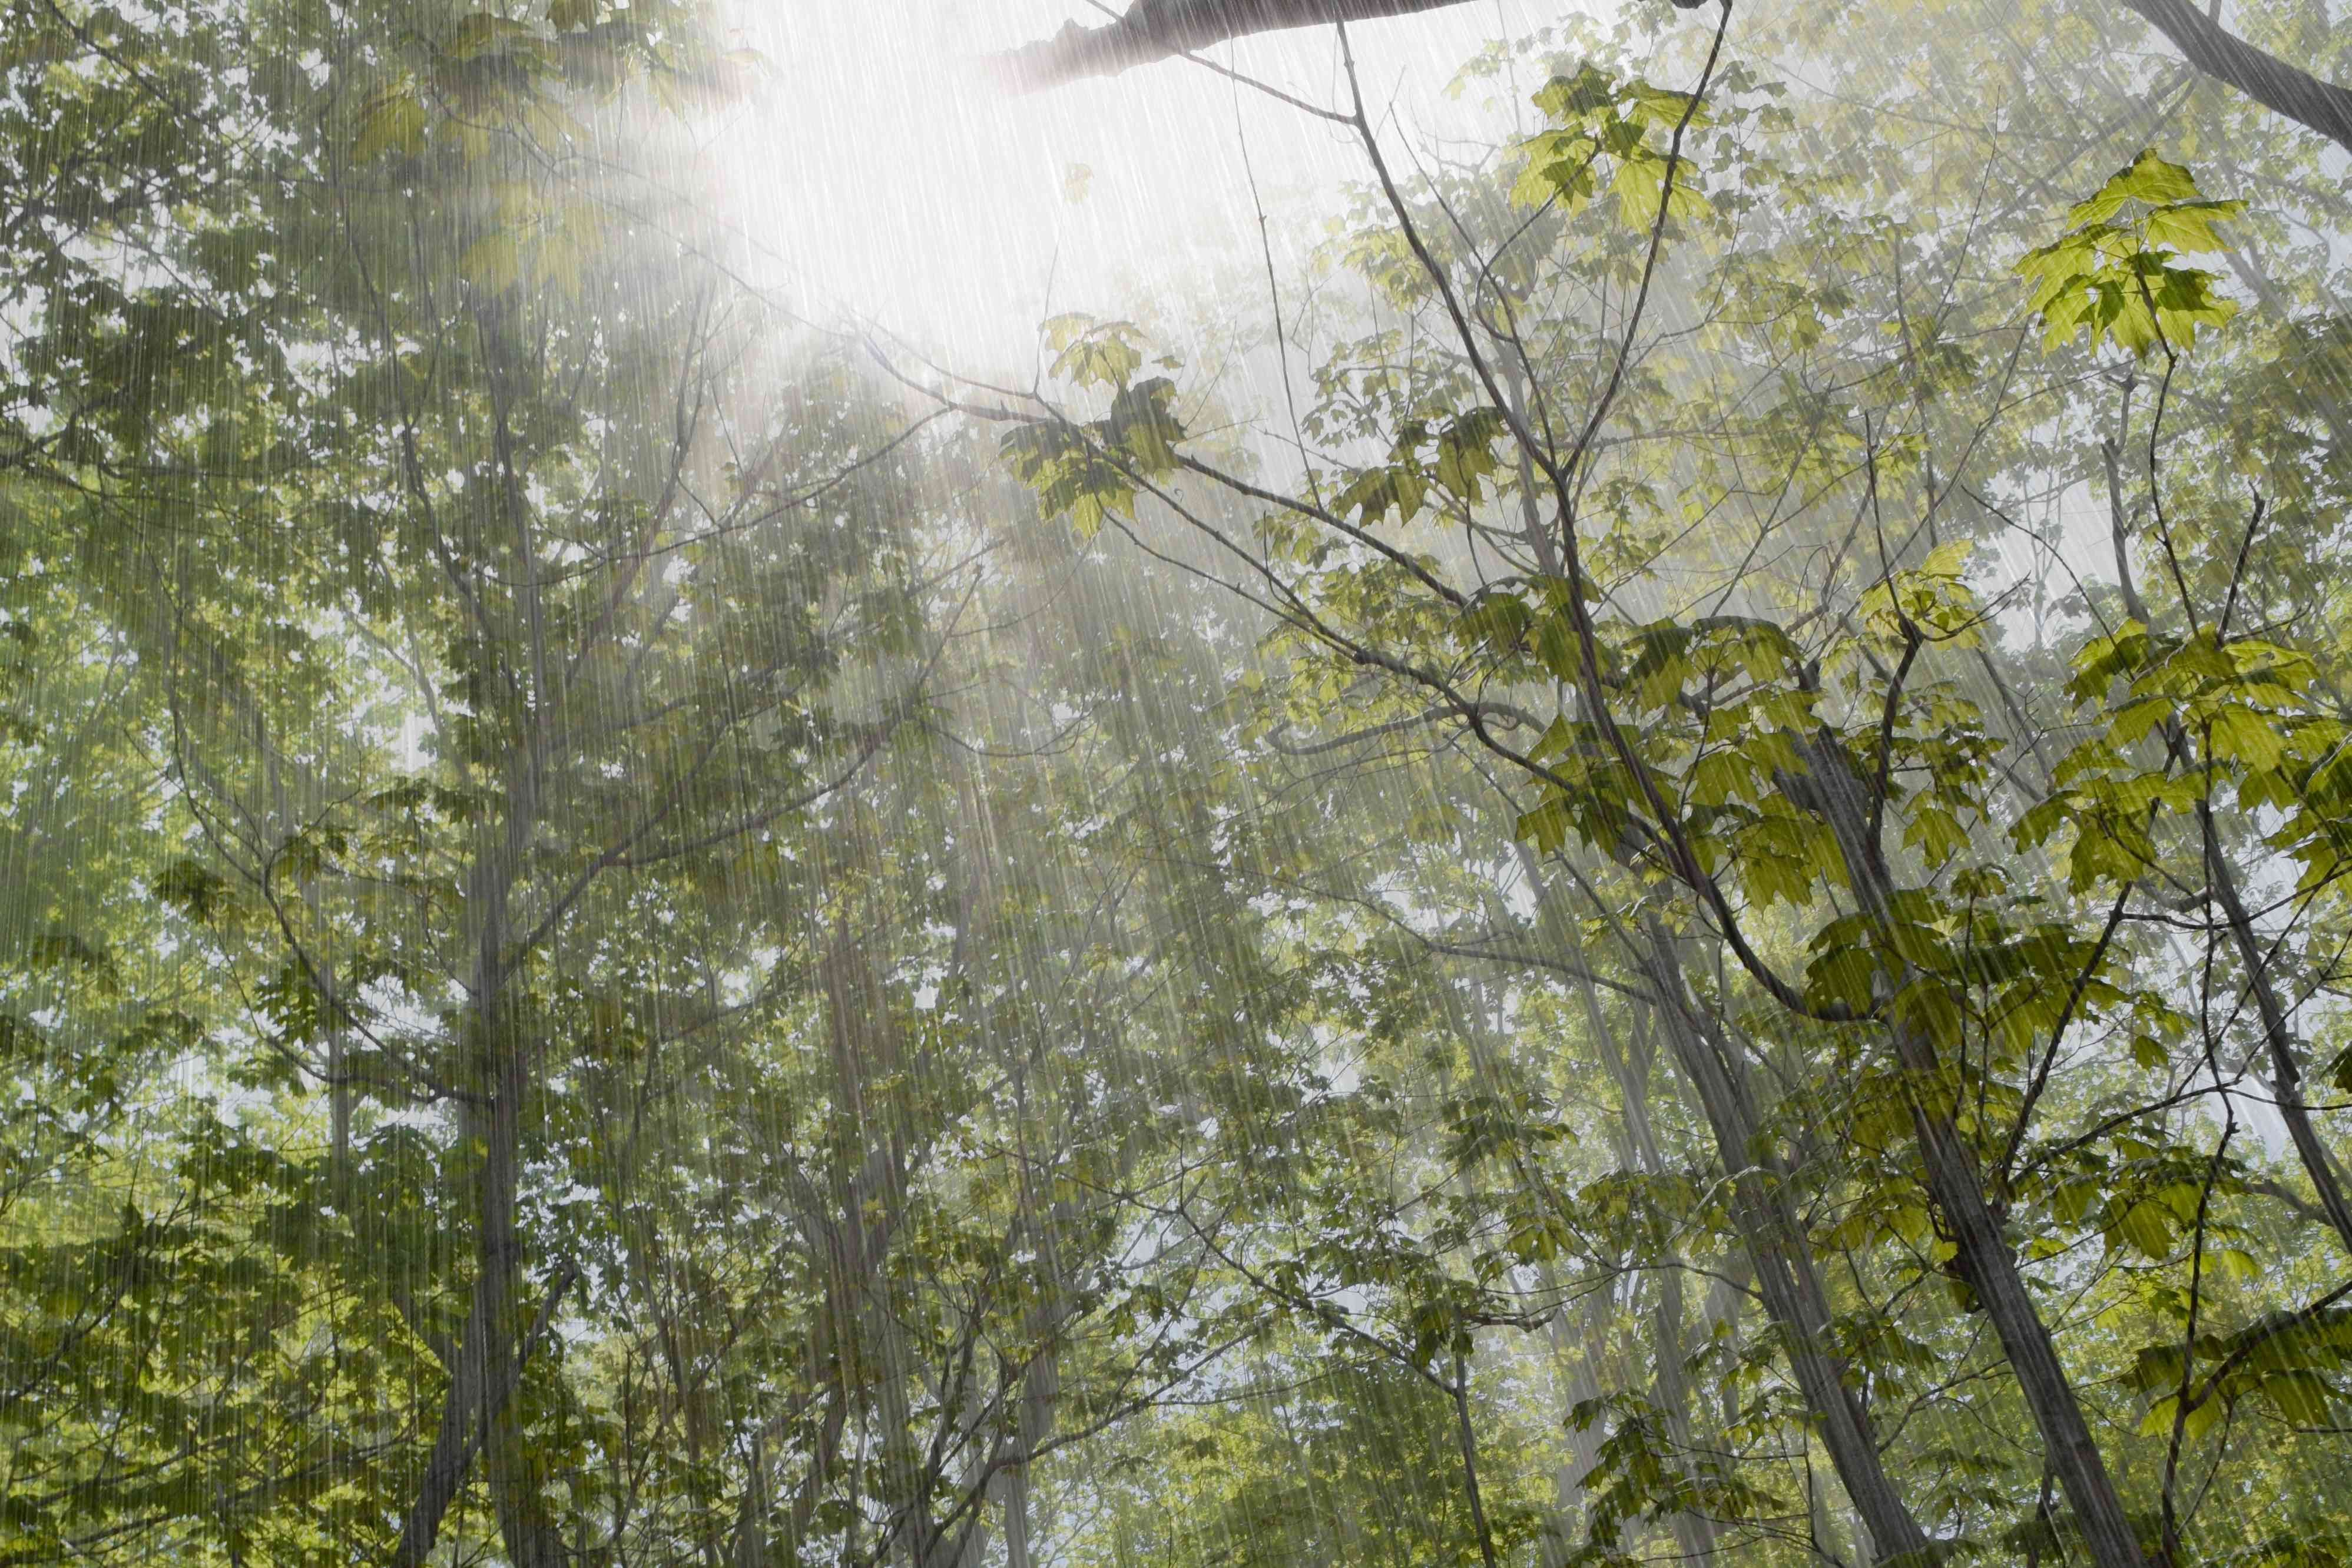 rainstorm with sunlight in forest